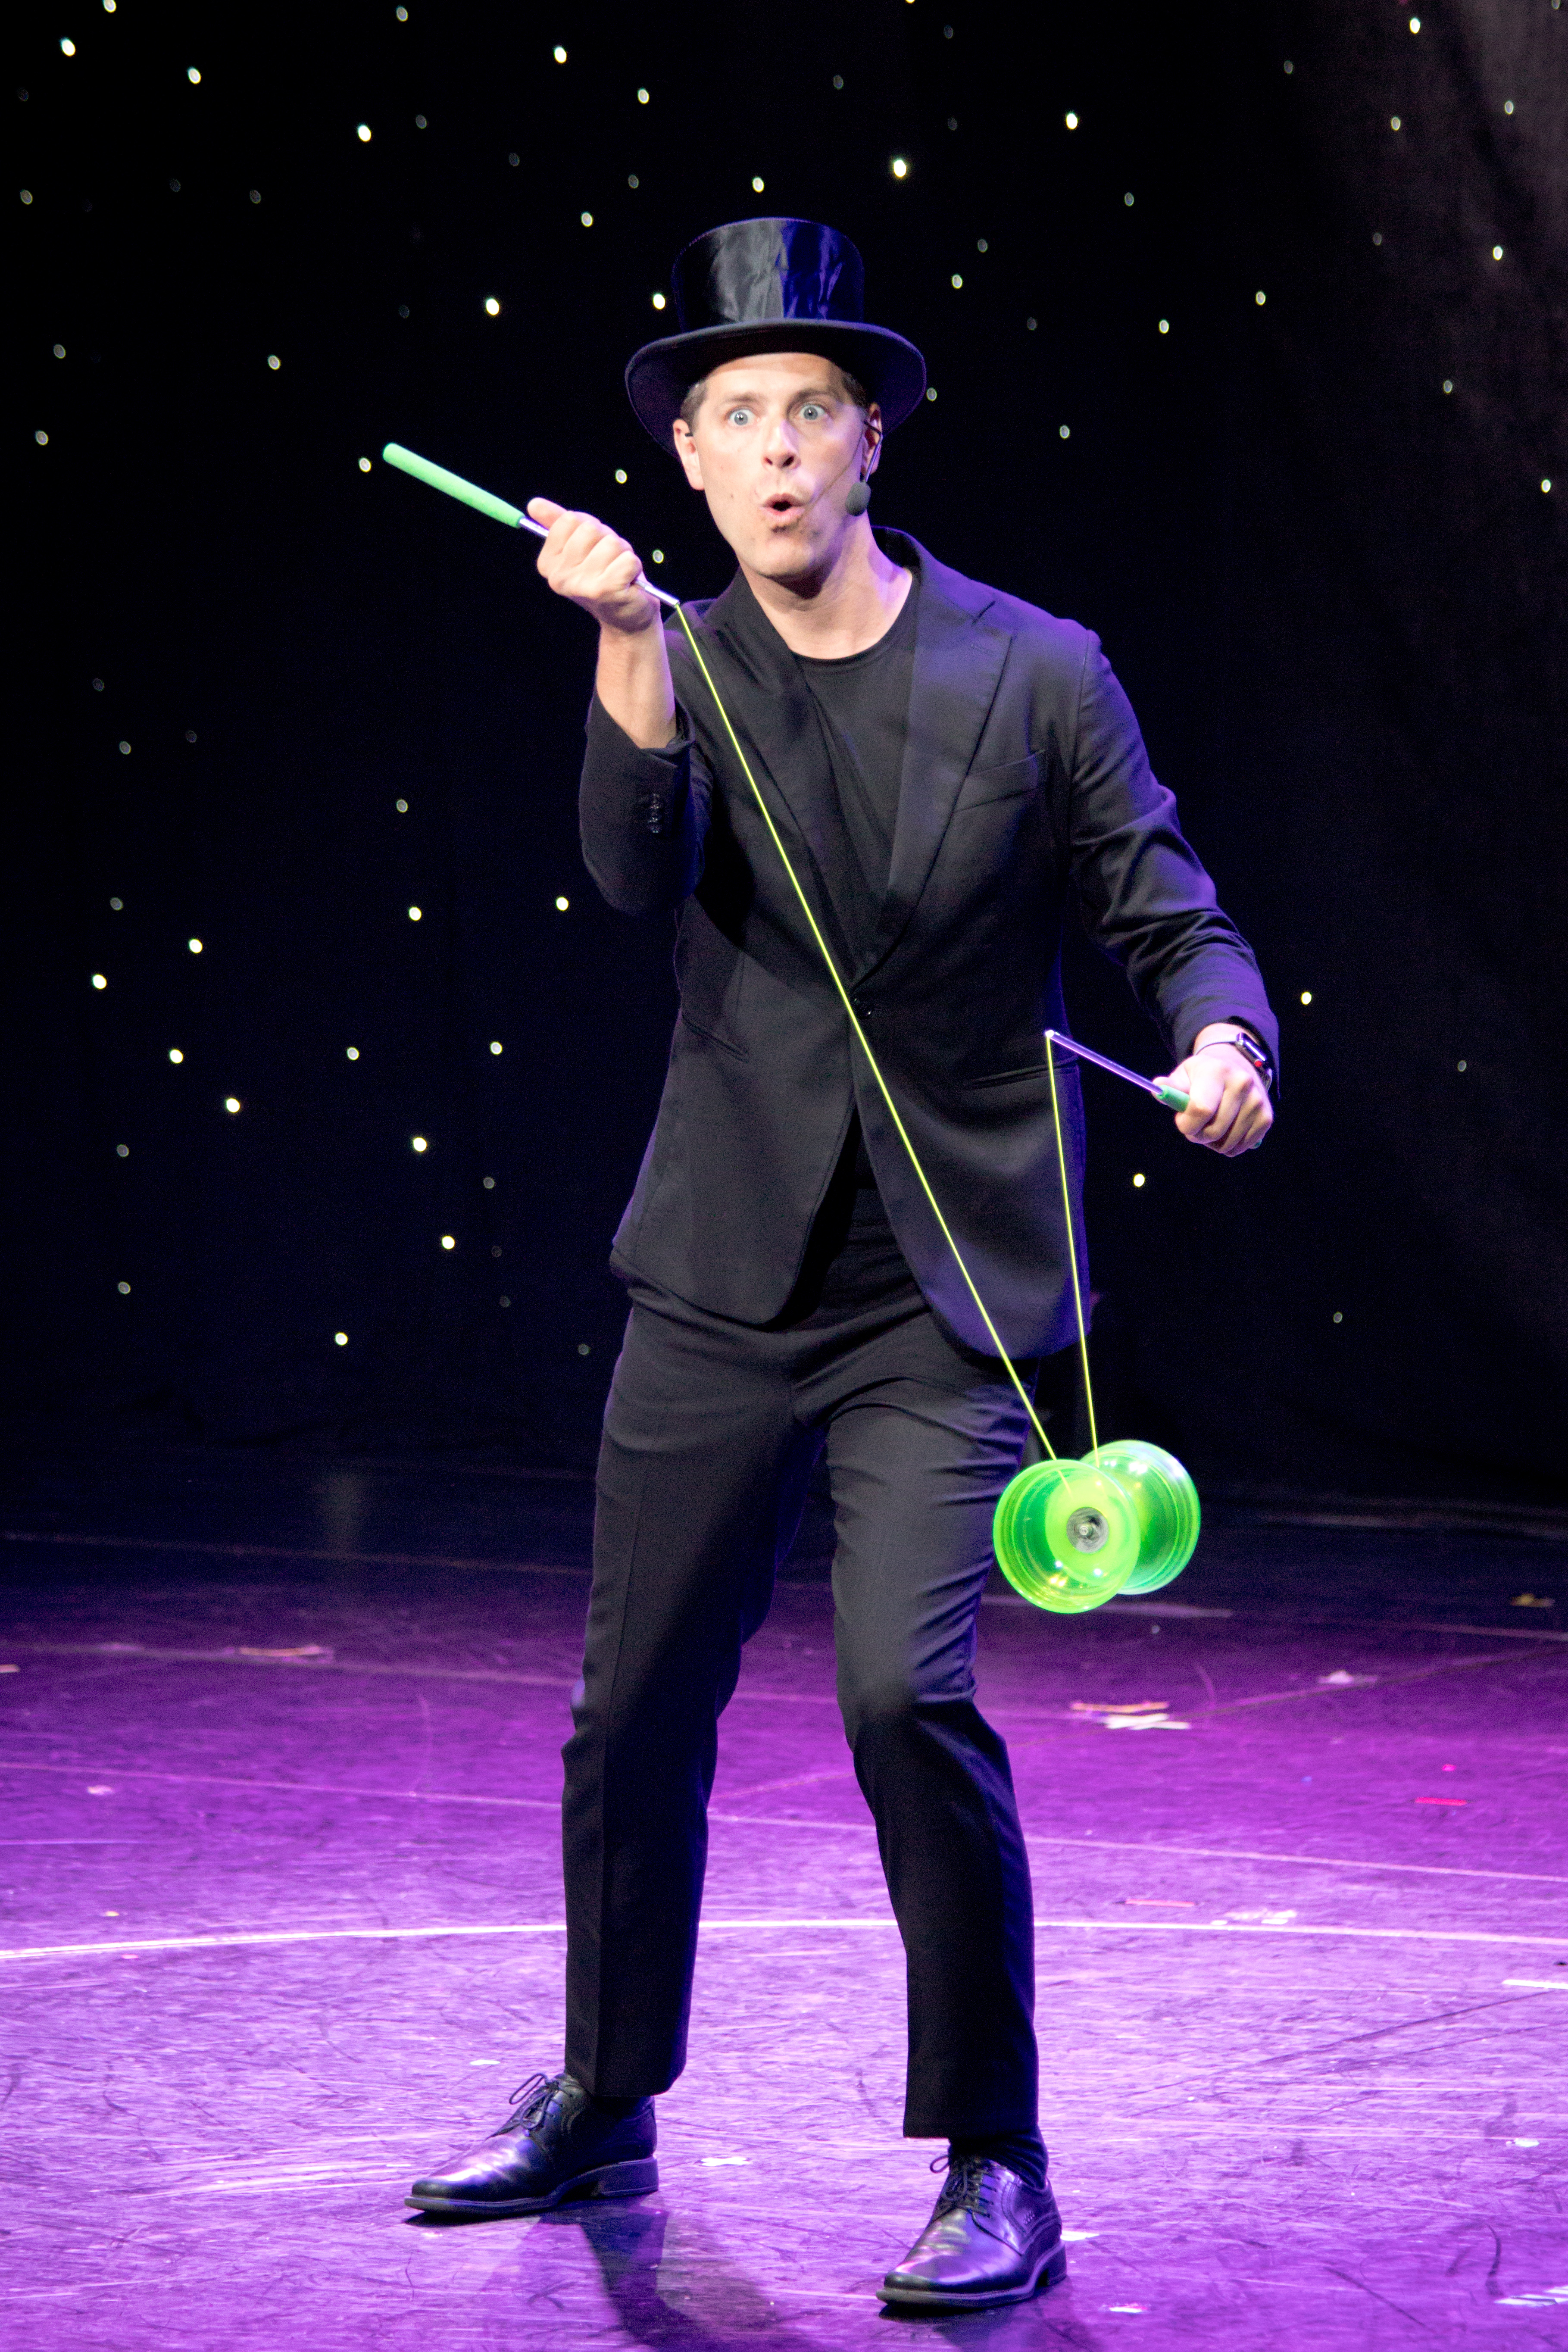 Luke Burrage Juggling Show 2018: no description.